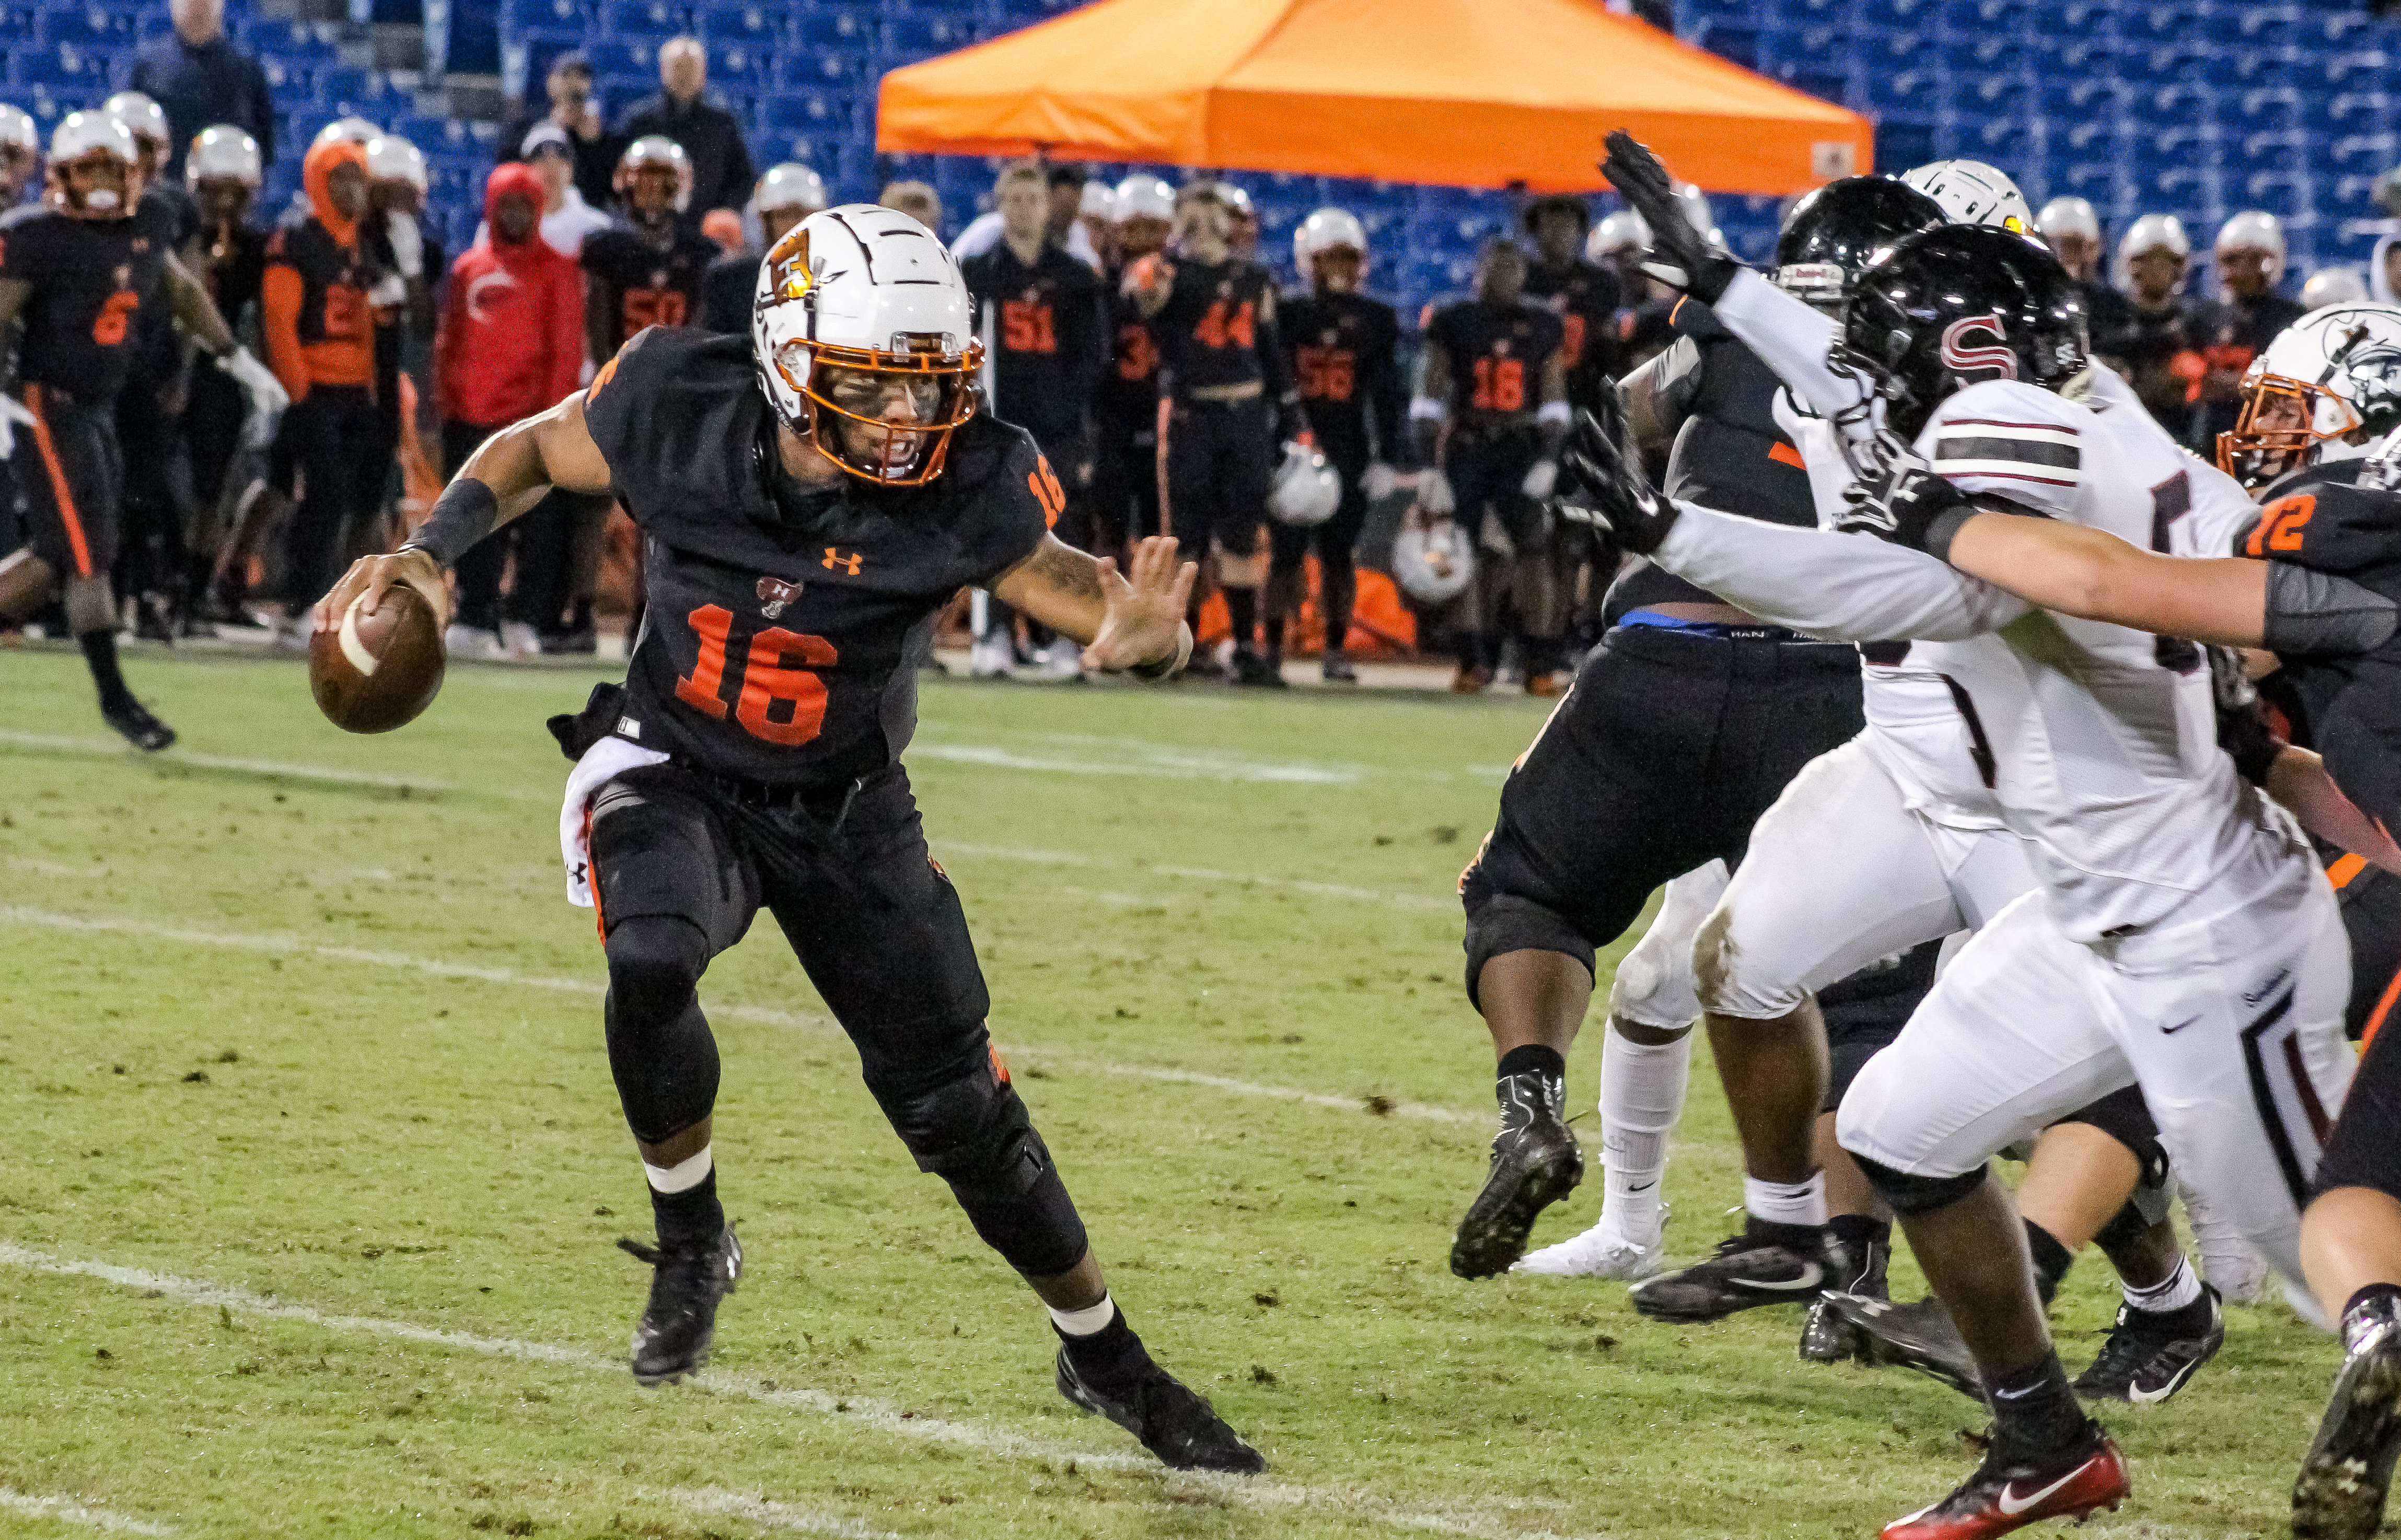 Hoover advances to 7A quarterfinals with win over Sparkman